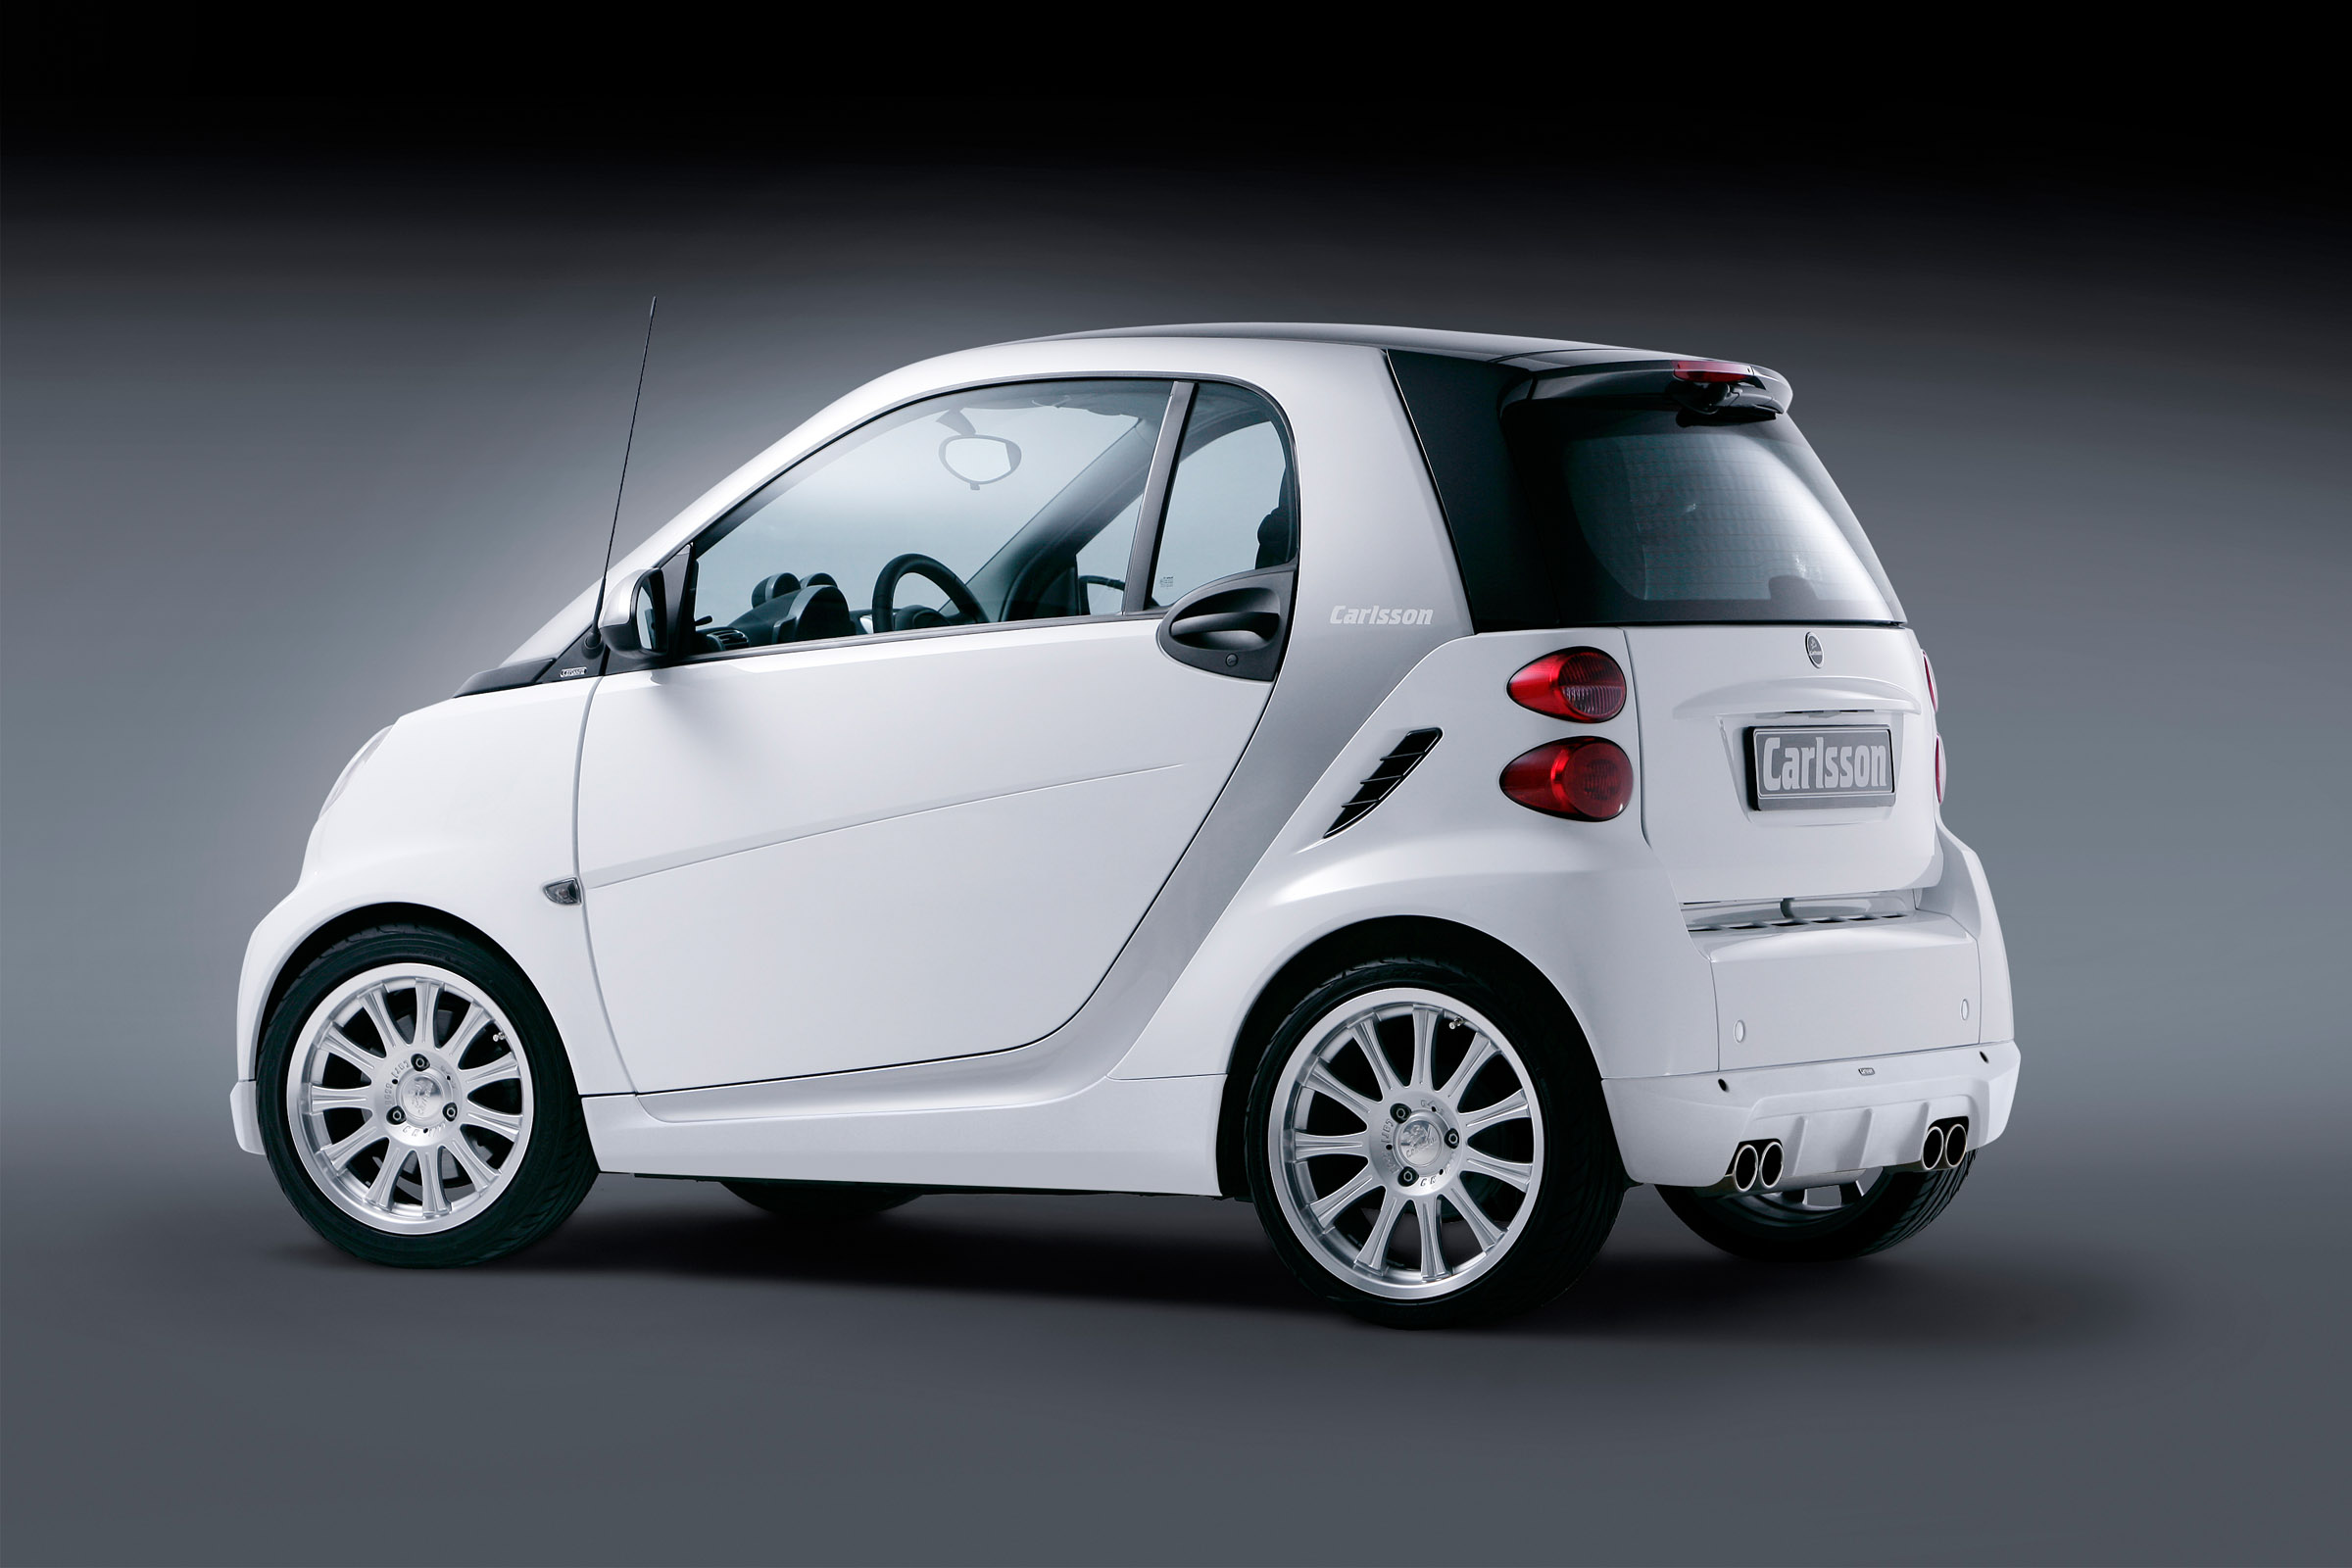 2012 Carlsson Smart Picture 63689